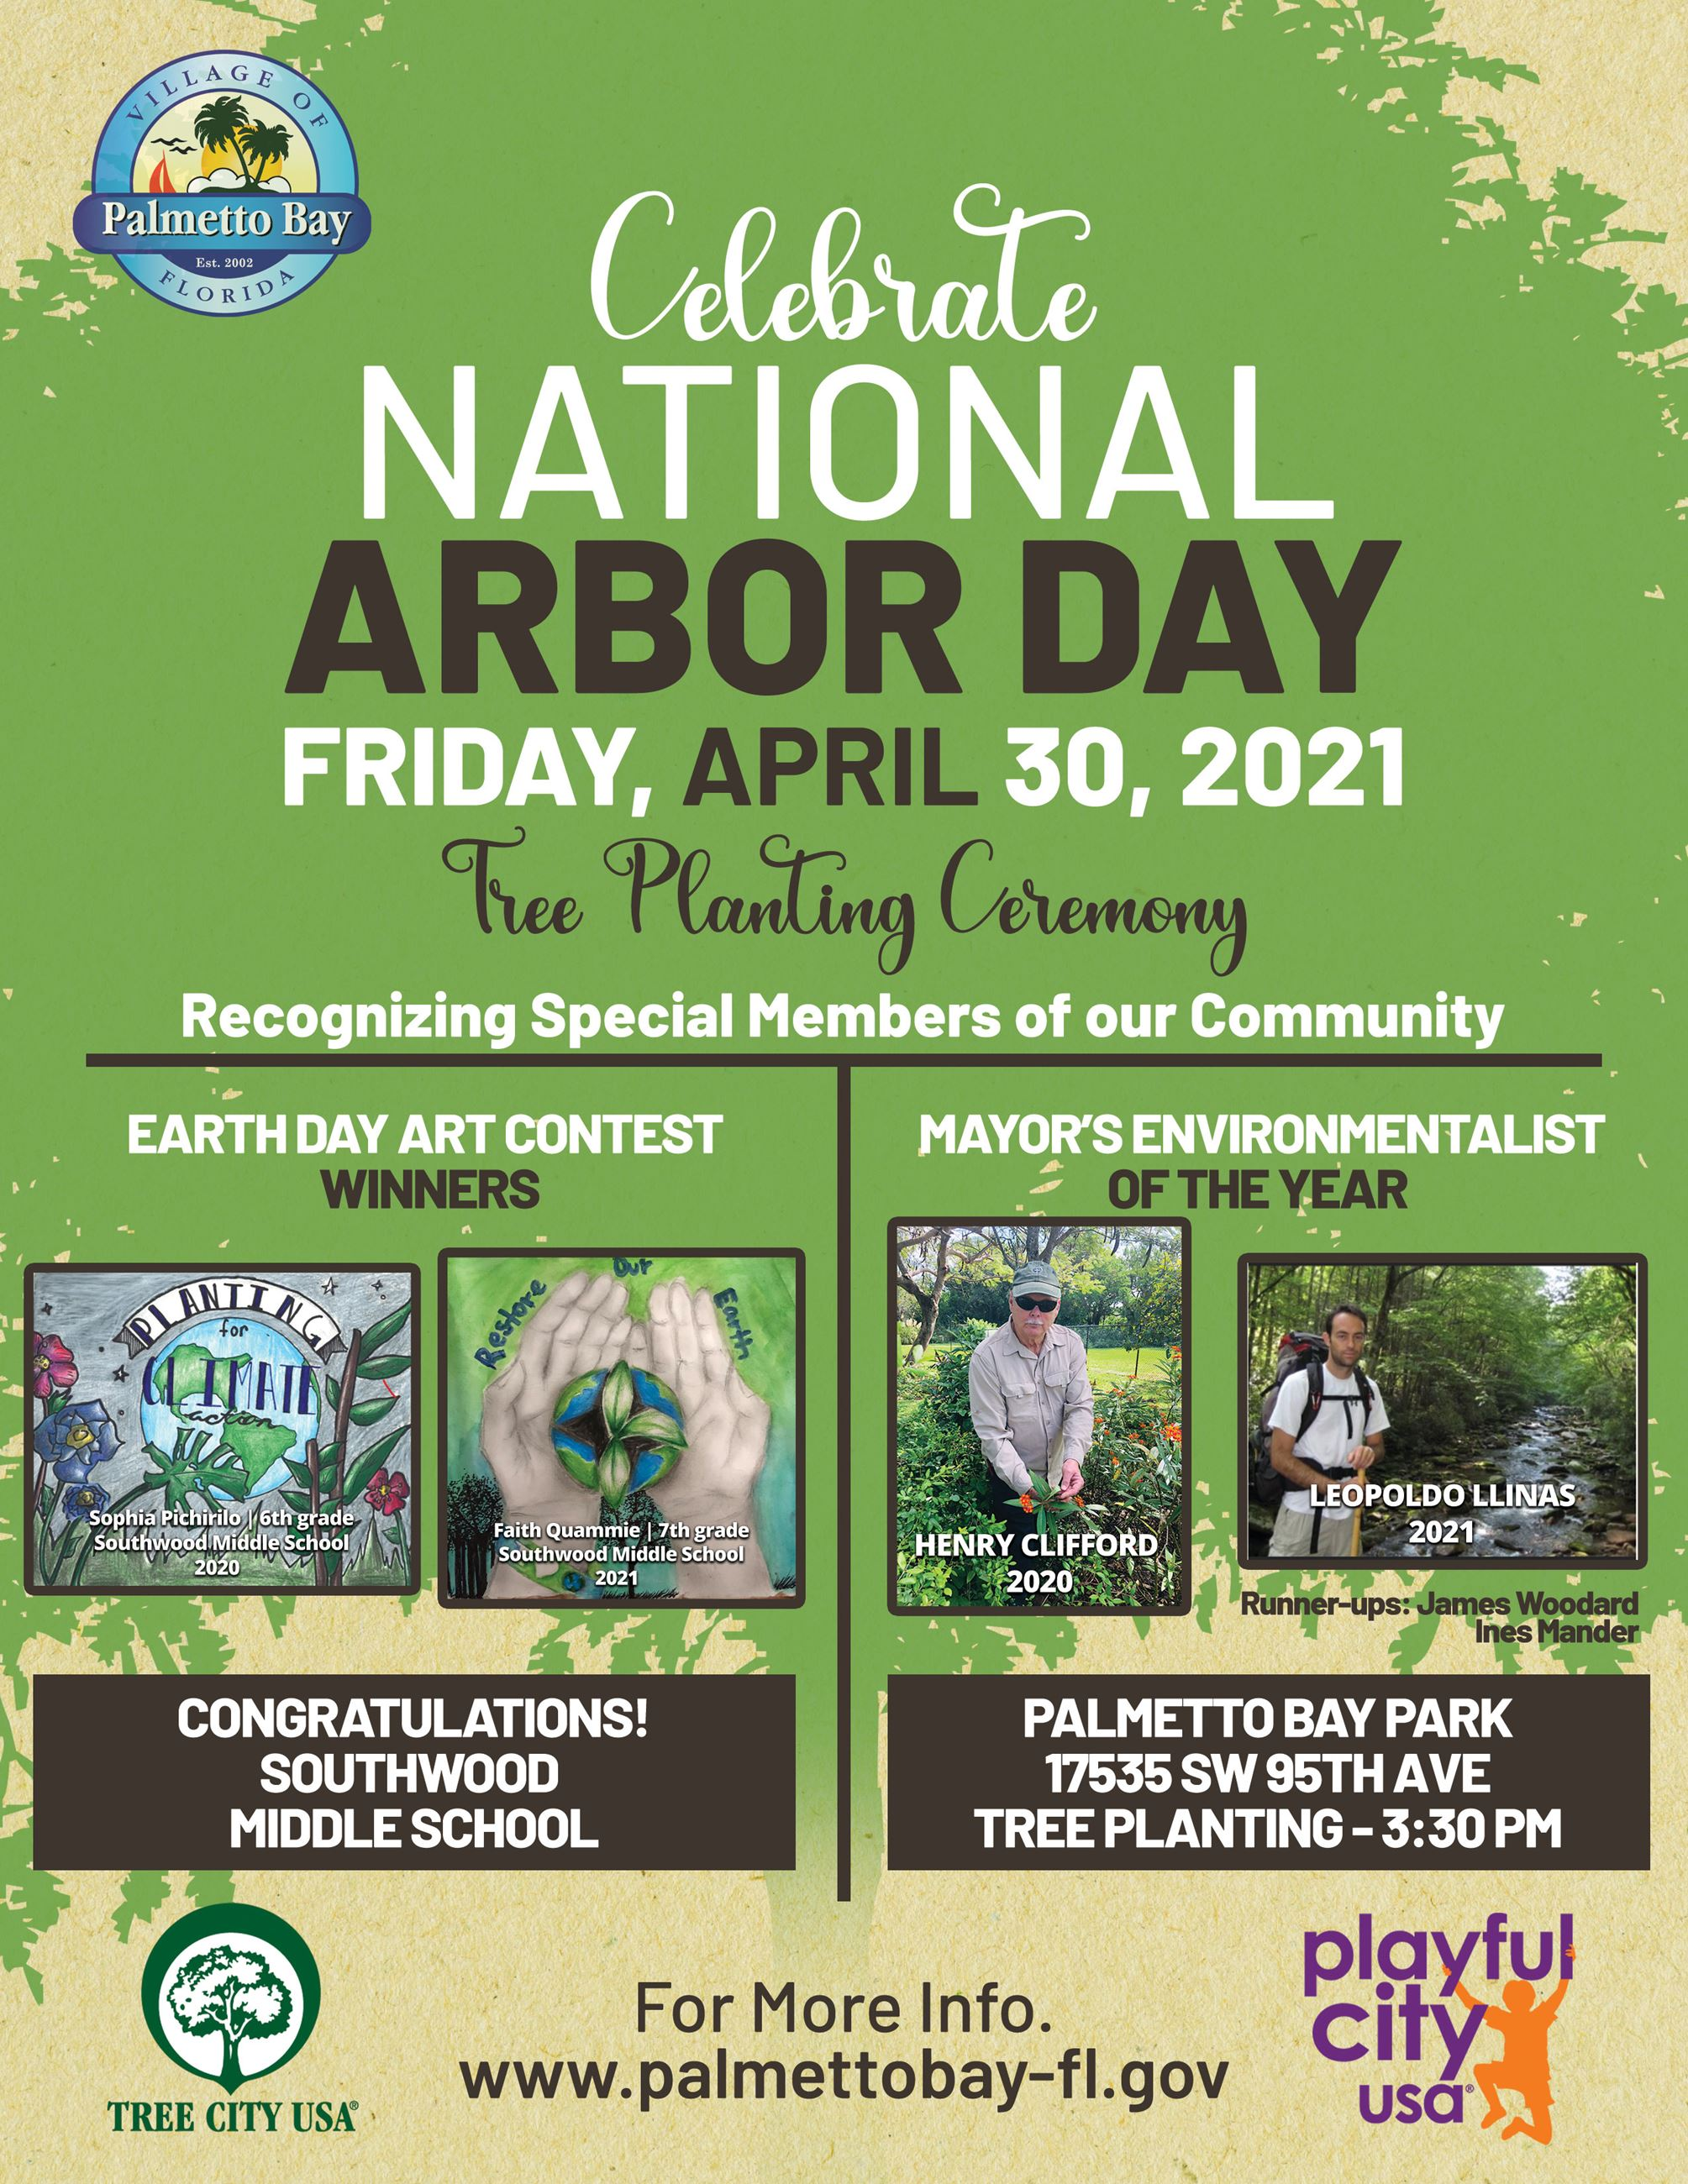 PB-Celebrates-National-Arbor-Day-2021-DRAFT